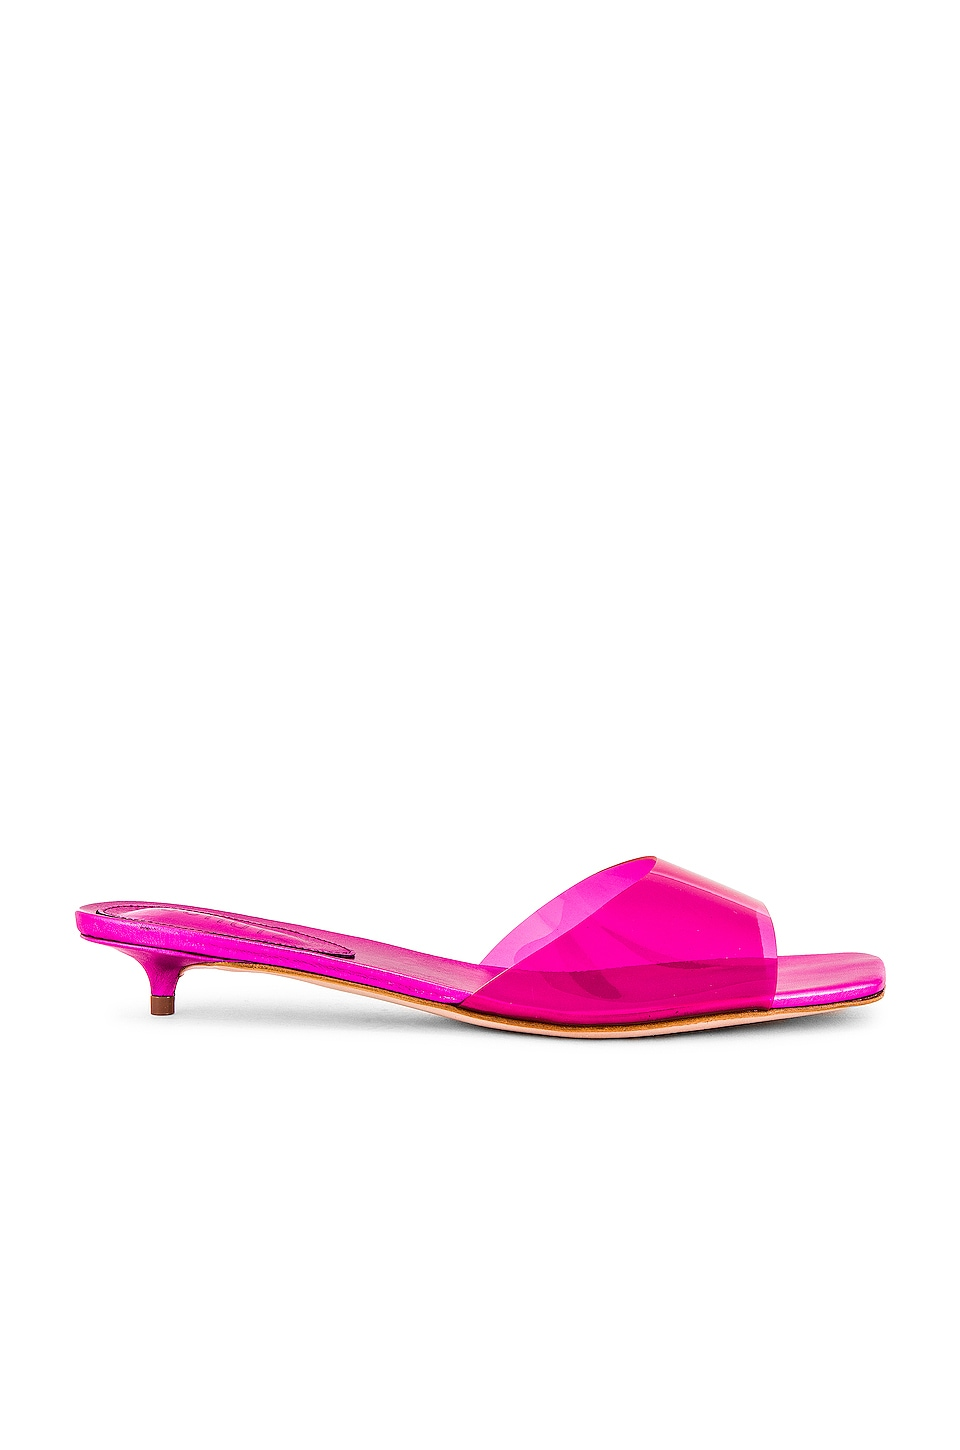 Schutz Zora Sandal in Rose Red